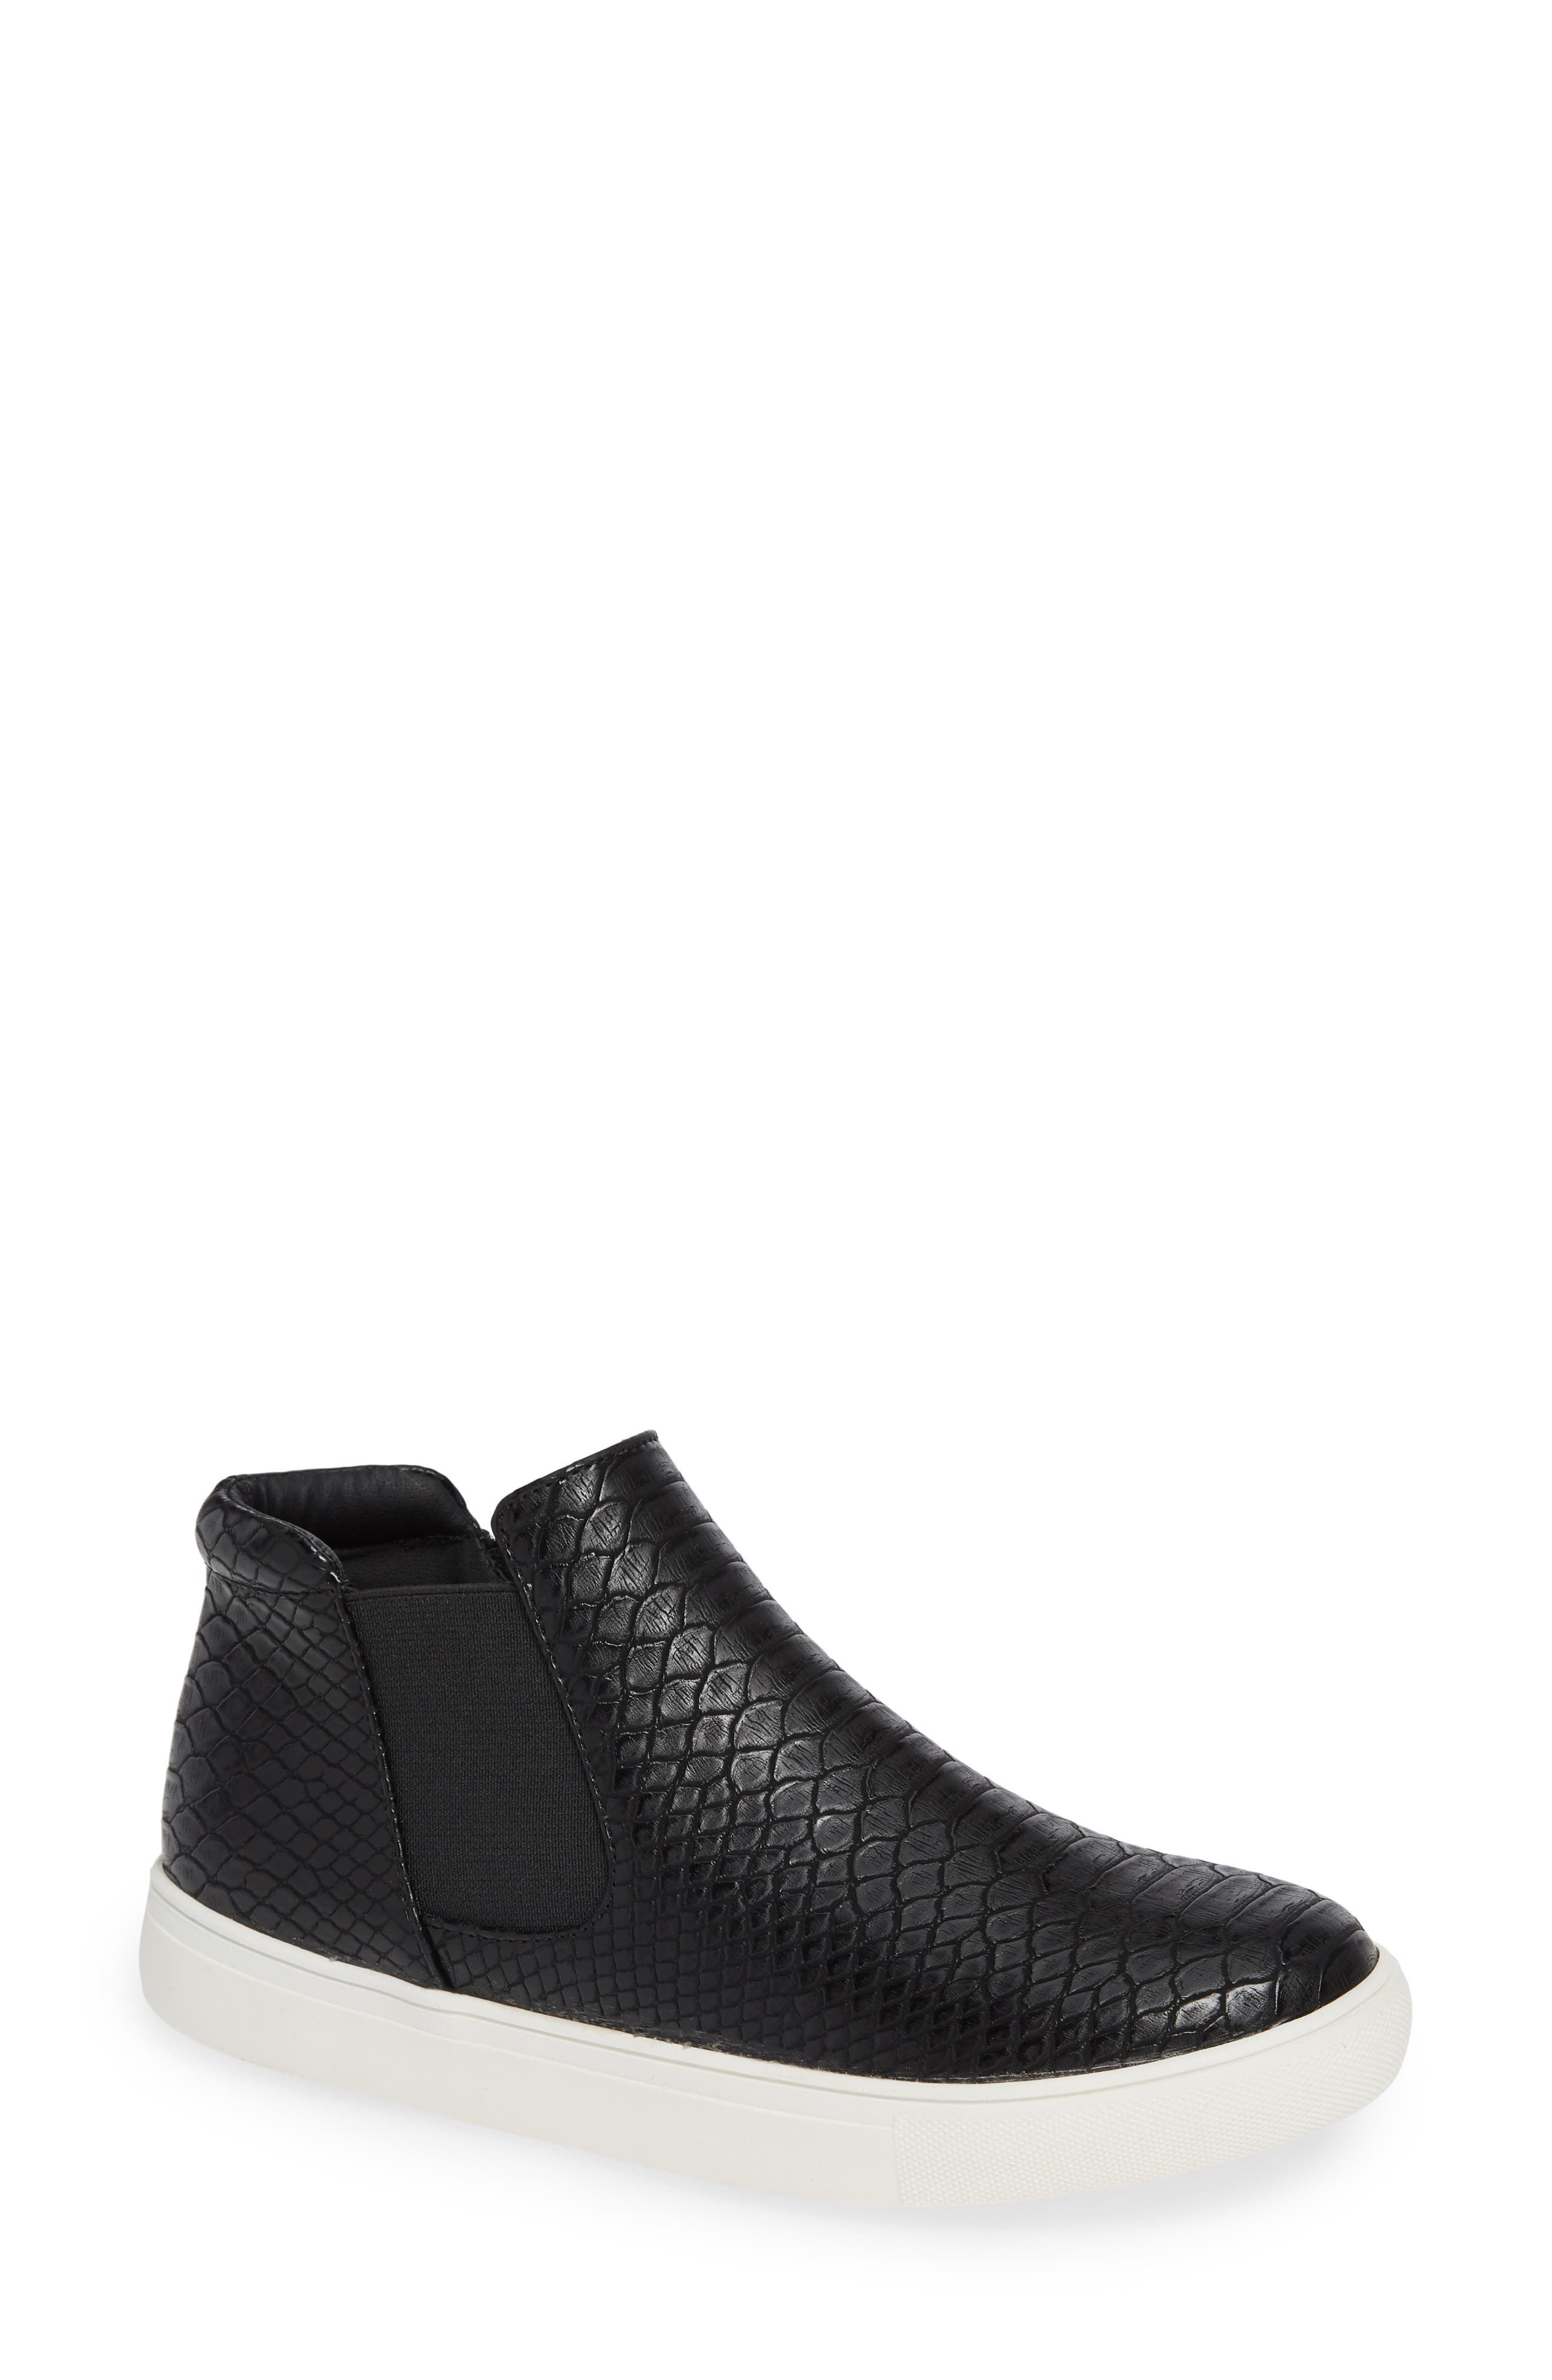 Harlan Slip-On Sneaker,                             Main thumbnail 1, color,                             BLACK SNAKE PRINT